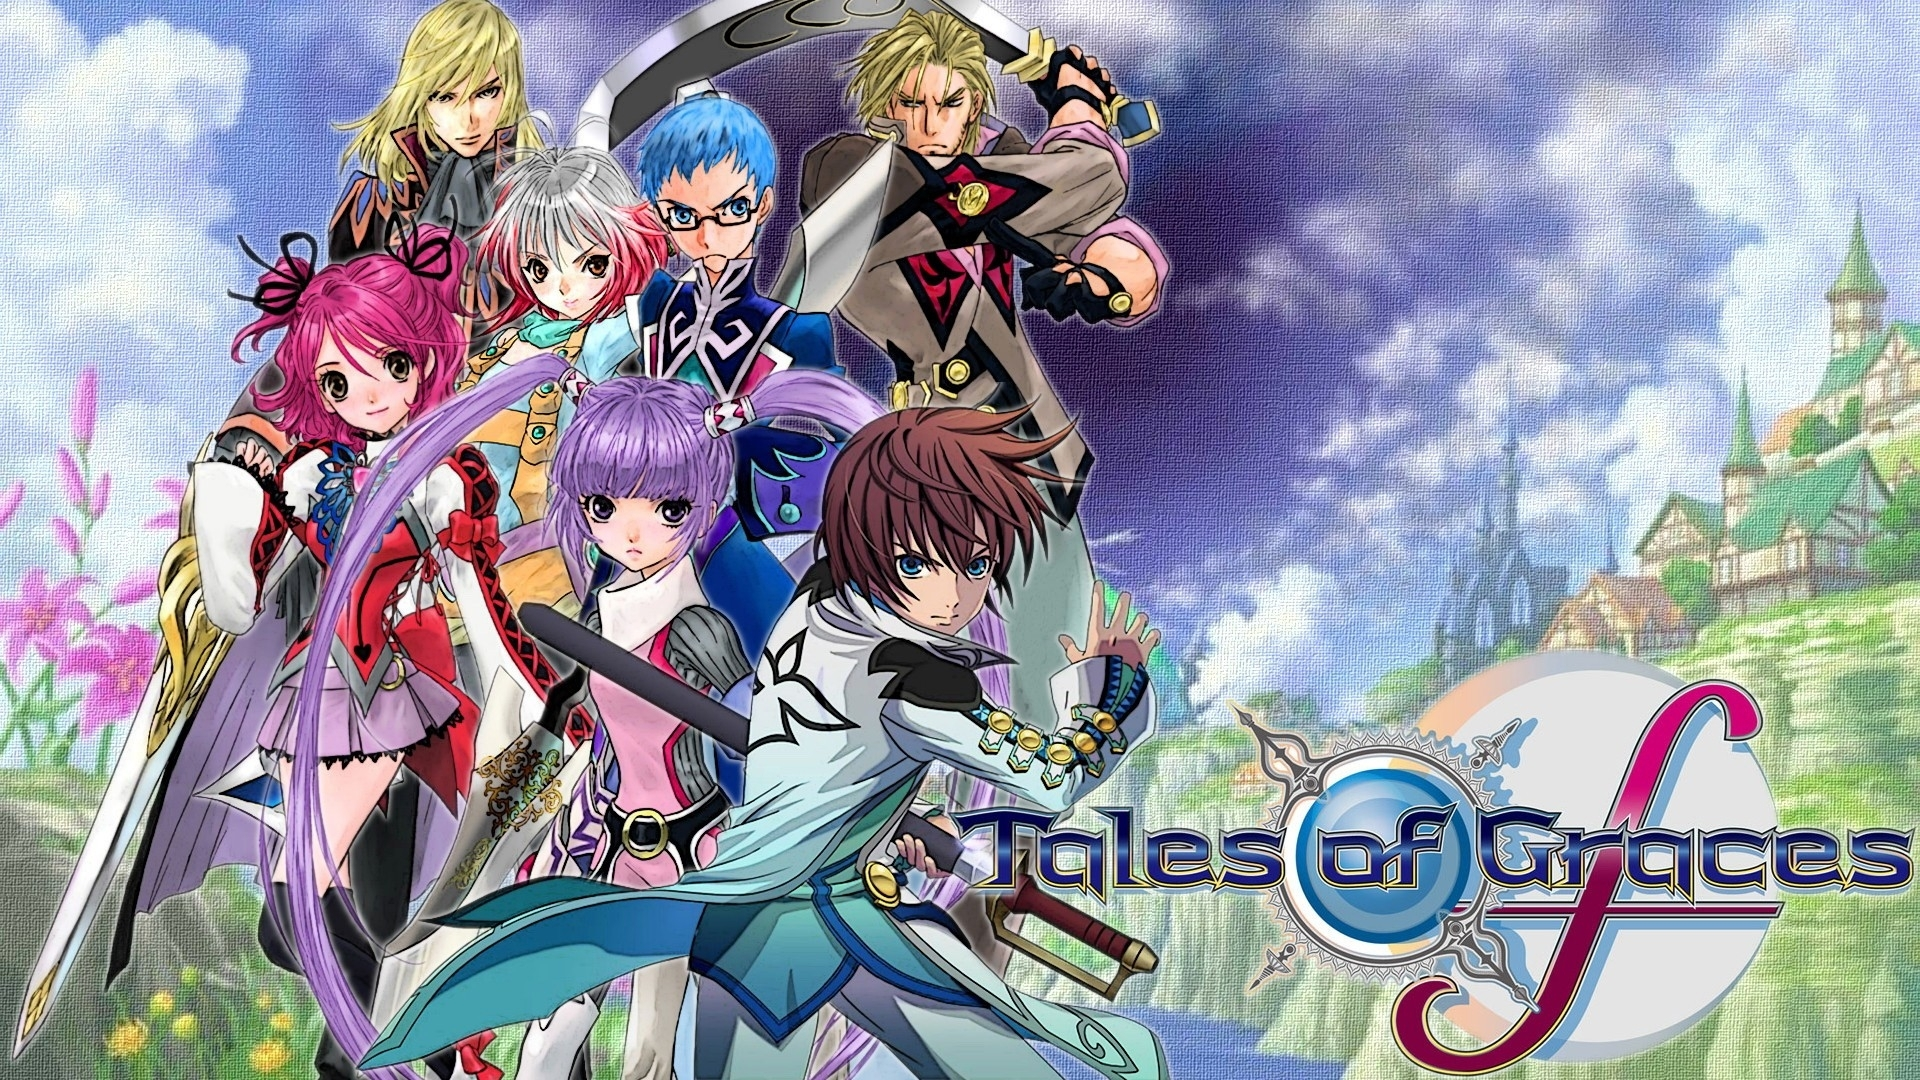 Tales Of Graces Tales Of Graces F 1513138 Hd Wallpaper